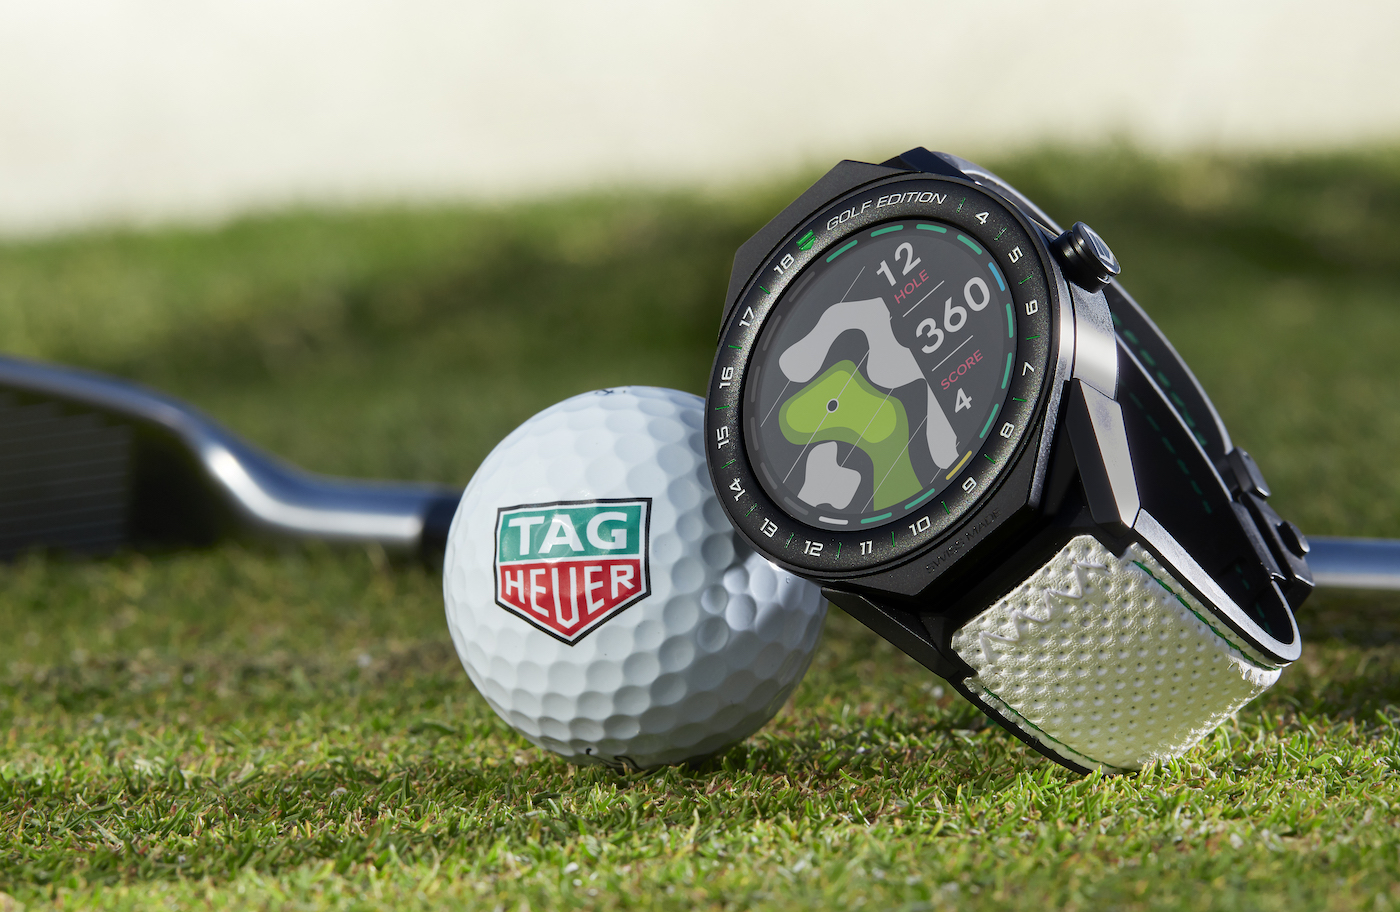 TAG Heuer Golf Connected Replica Watches